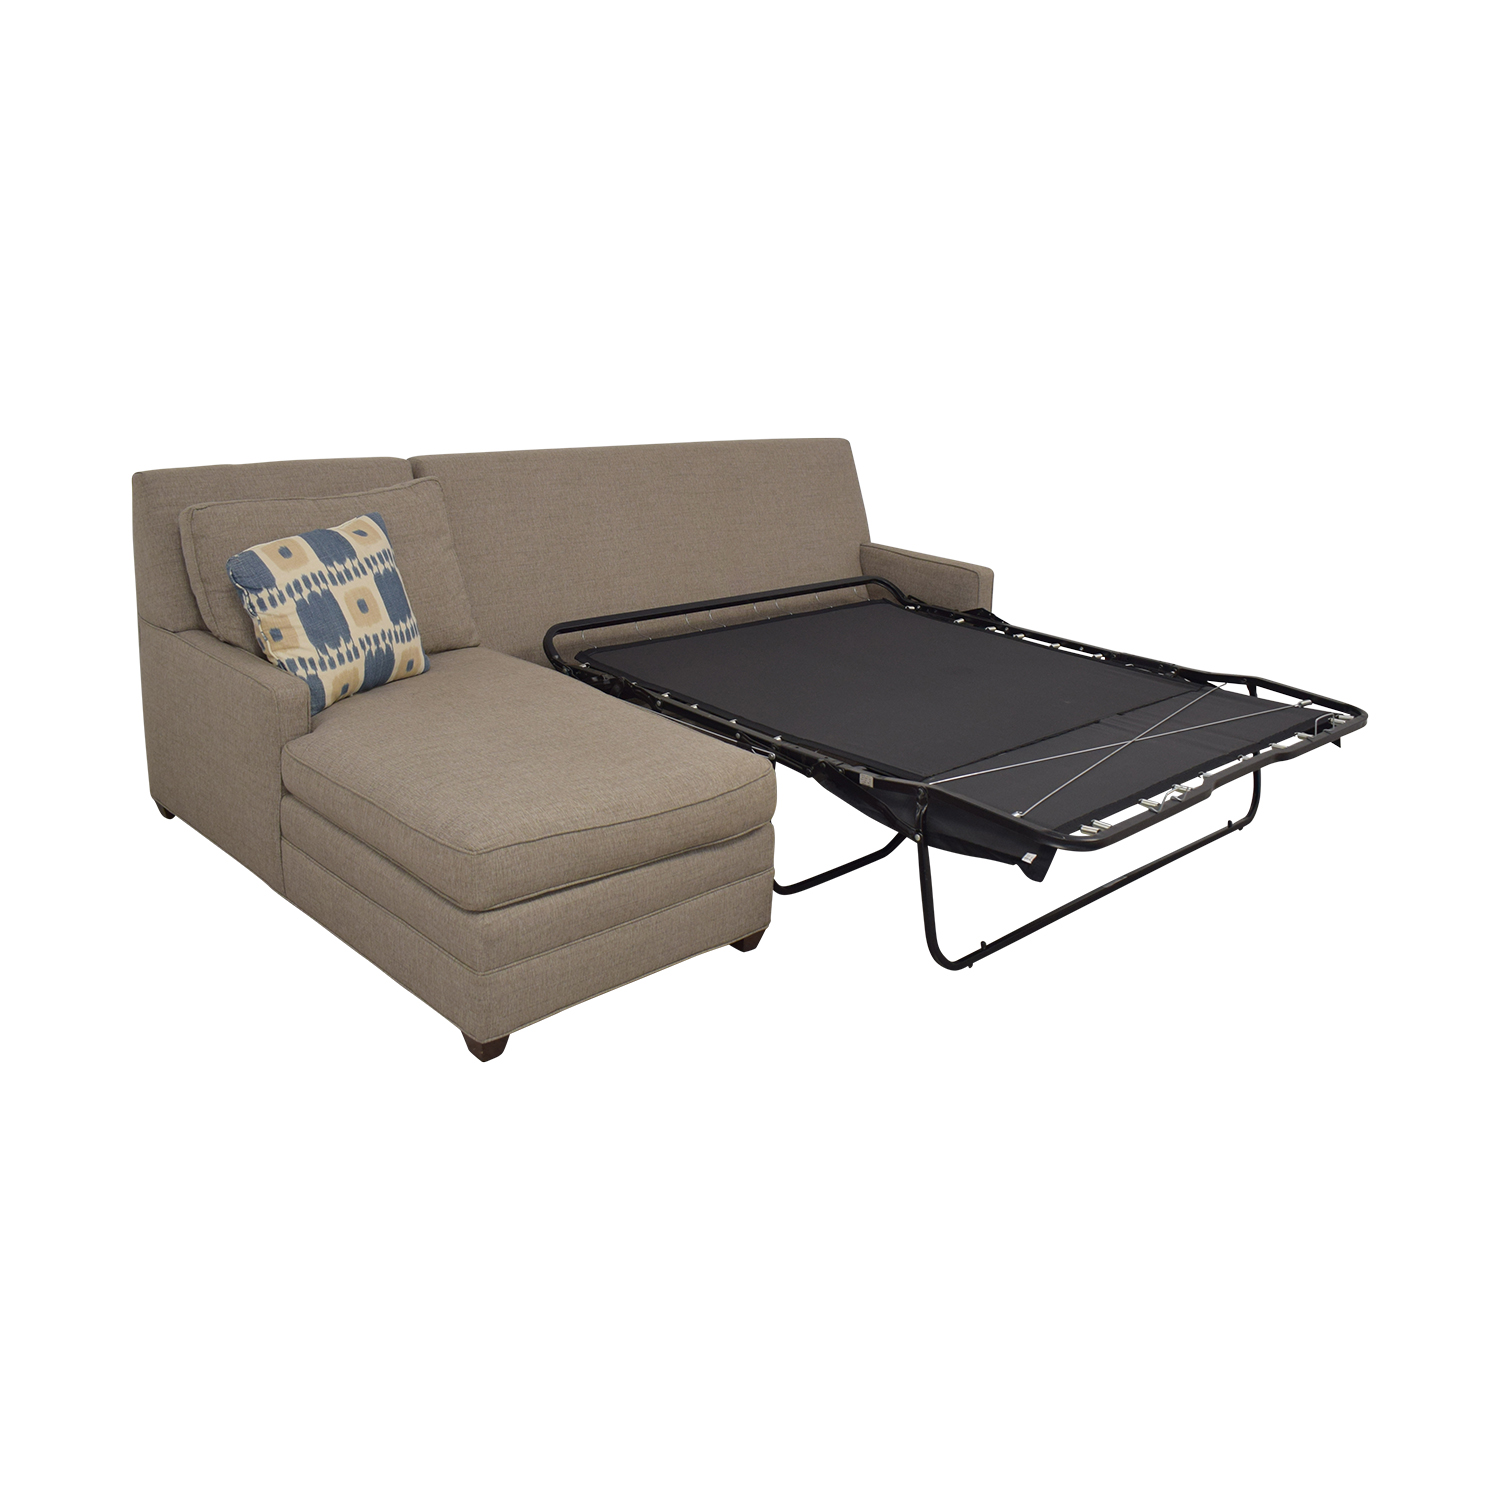 shop Vanguard Furniture Vanguard Furniture Left Chaise Queen Sleeper Sofa online